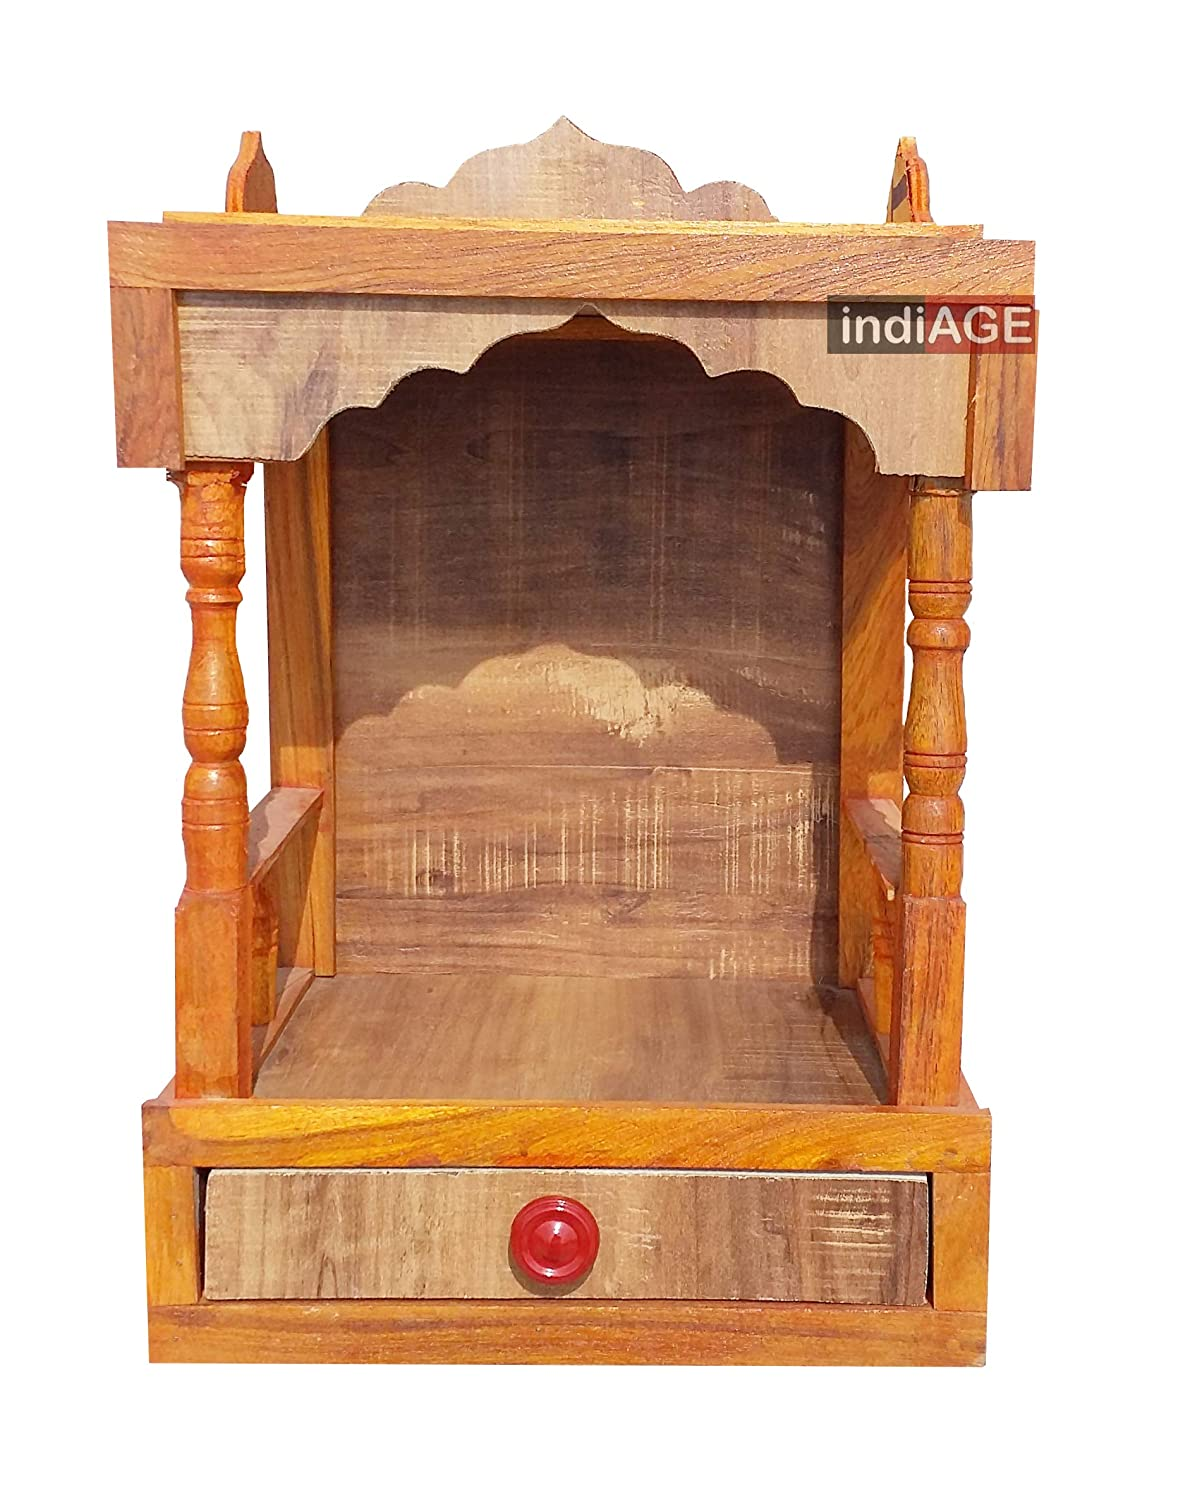 Indiage Wooden Wall Hanging Temple For Pooja Room With Drawer 45 X 20 X 30cm Brown Ia Lmga 1b0